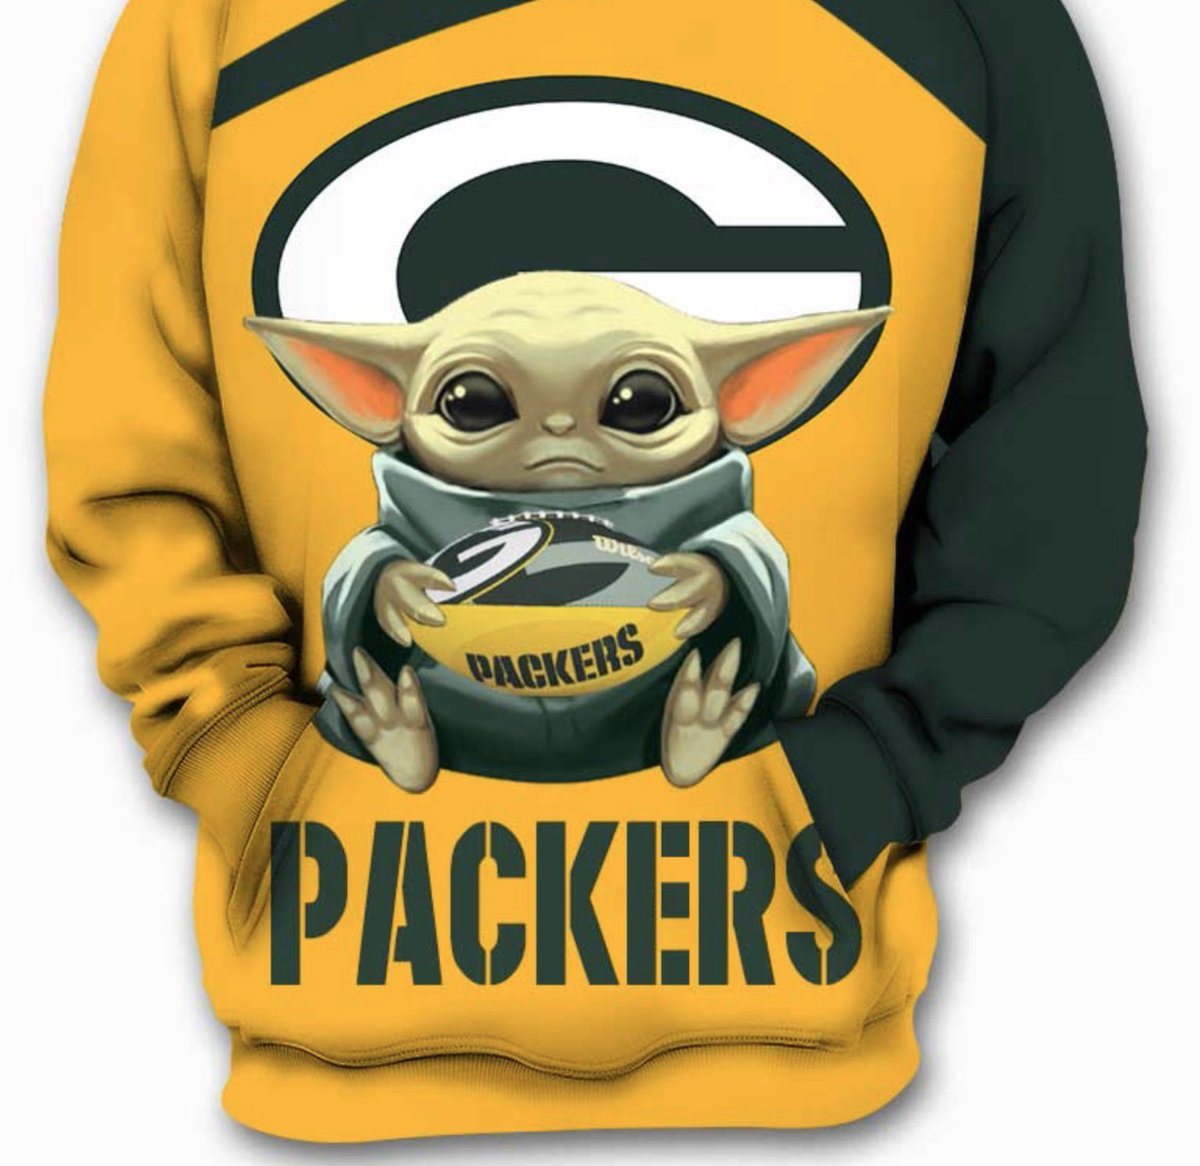 Game time!! Let's go @packers!